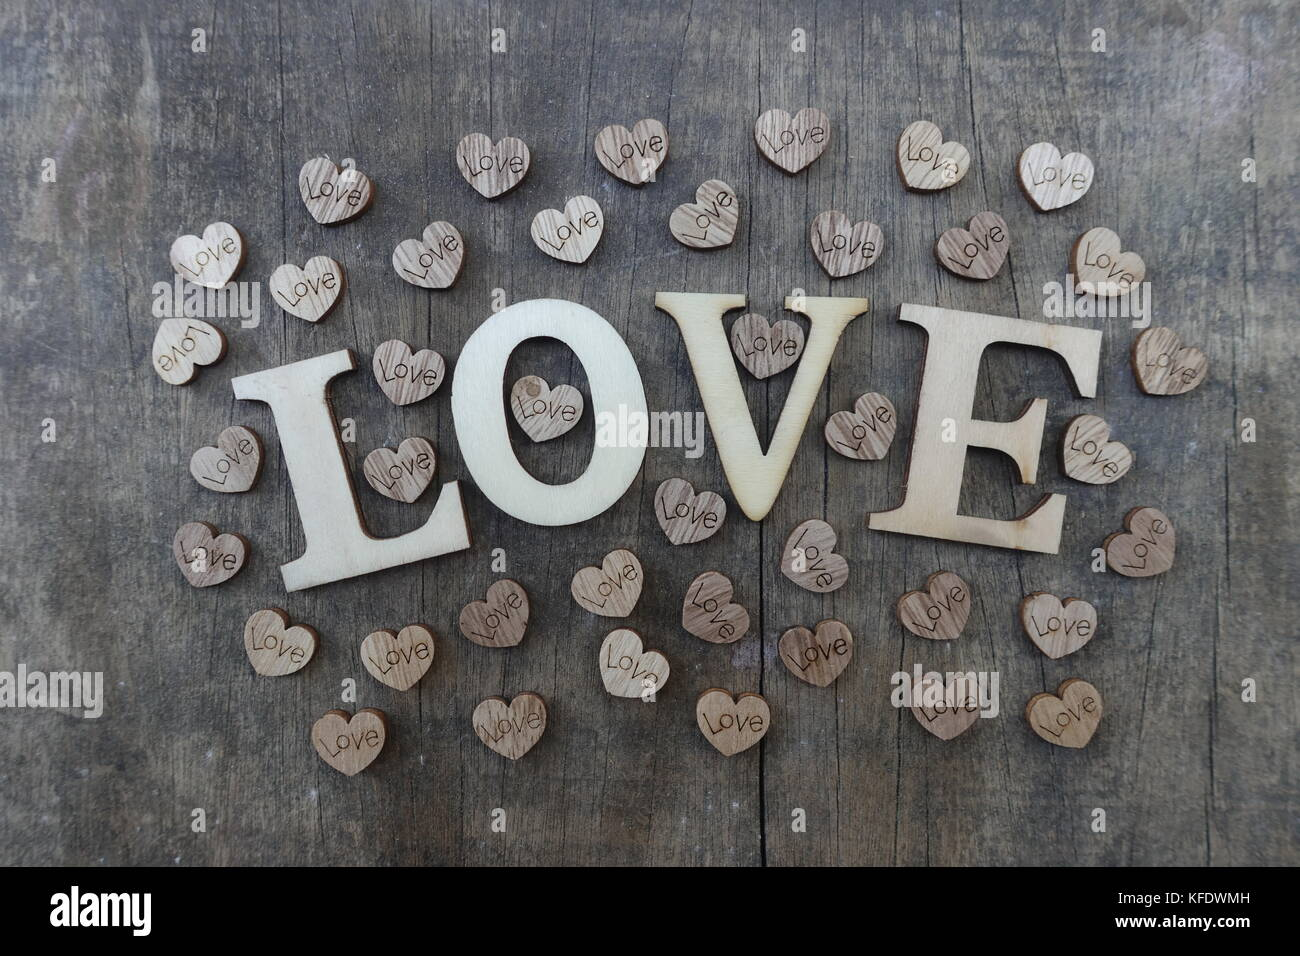 Addicted to love stock photos addicted to love stock images alamy love text with wooden letters and hearts stock image buycottarizona Image collections